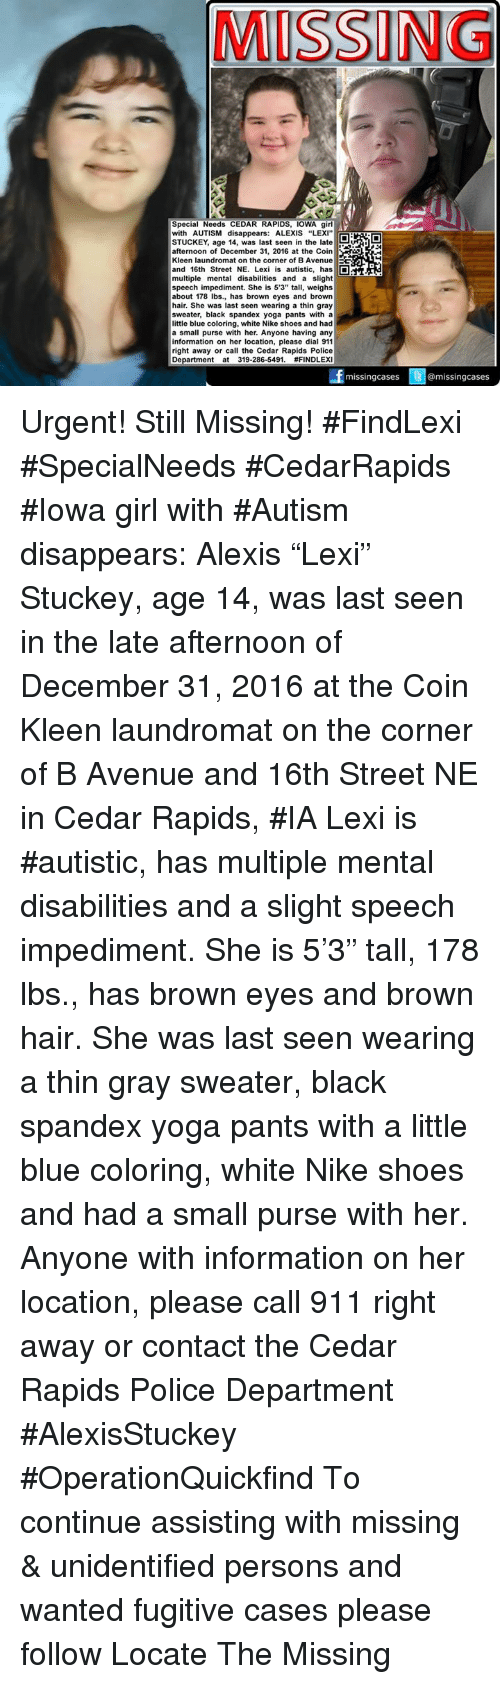 """cedar: MISSING  Special Needs CEDAR RAPIDS, IOWA girl  with AUTISM disappears: ALEXIS """"LEXI""""  STUCKEY, age 14, was last seen in the late  afternoon of December 31, 2016 at the Coin  Kleen laundromat on the corner of BAvenue EE  and 16th Street NE. Lexi is autistic, has  D  multiple mental disabilities and a slight  speech impediment. She is 5'3"""" tall, weighs  about 178 lbs., has brown eyes and brown  hair. She was last seen wearing a thin gray  sweater, black spandex yoga pants with a  little blue coloring, white Nike shoes and had  a small purse with her. Anyone having any  information on her location, please dial 911  right away or call the Cedar Rapids Police  Department at 319-286-5491.  #FINDLEX  missing cases  @missing cases Urgent! Still Missing! #FindLexi #SpecialNeeds #CedarRapids #Iowa girl with #Autism disappears: Alexis """"Lexi"""" Stuckey, age 14, was last seen in the late afternoon of December 31, 2016 at the Coin Kleen laundromat on the corner of B Avenue and 16th Street NE in Cedar Rapids, #IA  Lexi is #autistic, has multiple mental disabilities and a slight speech impediment. She is 5'3"""" tall, 178 lbs., has brown eyes and brown hair. She was last seen wearing a thin gray sweater, black spandex yoga pants with a little blue coloring, white Nike shoes and had a small purse with her.   Anyone with information on her location, please call 911 right away or contact the Cedar Rapids Police Department  #AlexisStuckey #OperationQuickfind  To continue assisting with missing & unidentified persons and wanted fugitive cases please follow Locate The Missing"""